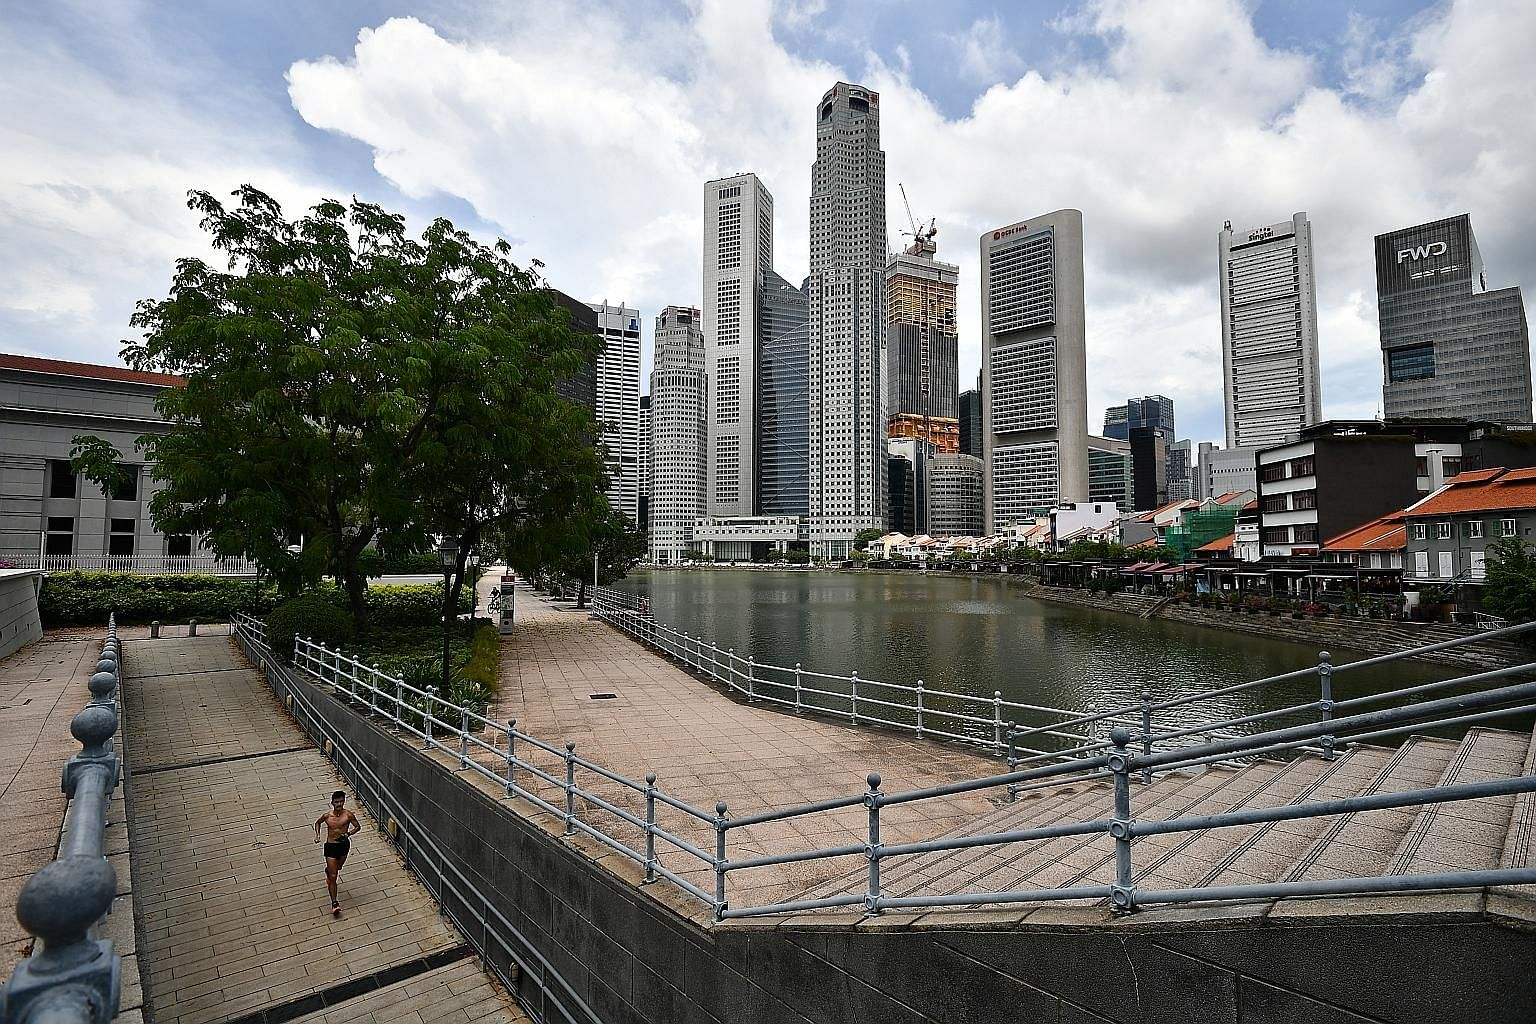 Individual health insurance policy sales in Singapore raked in $101.8 million in terms of total new business premiums for the first quarter, up 5 per cent year on year from $97.3 million.